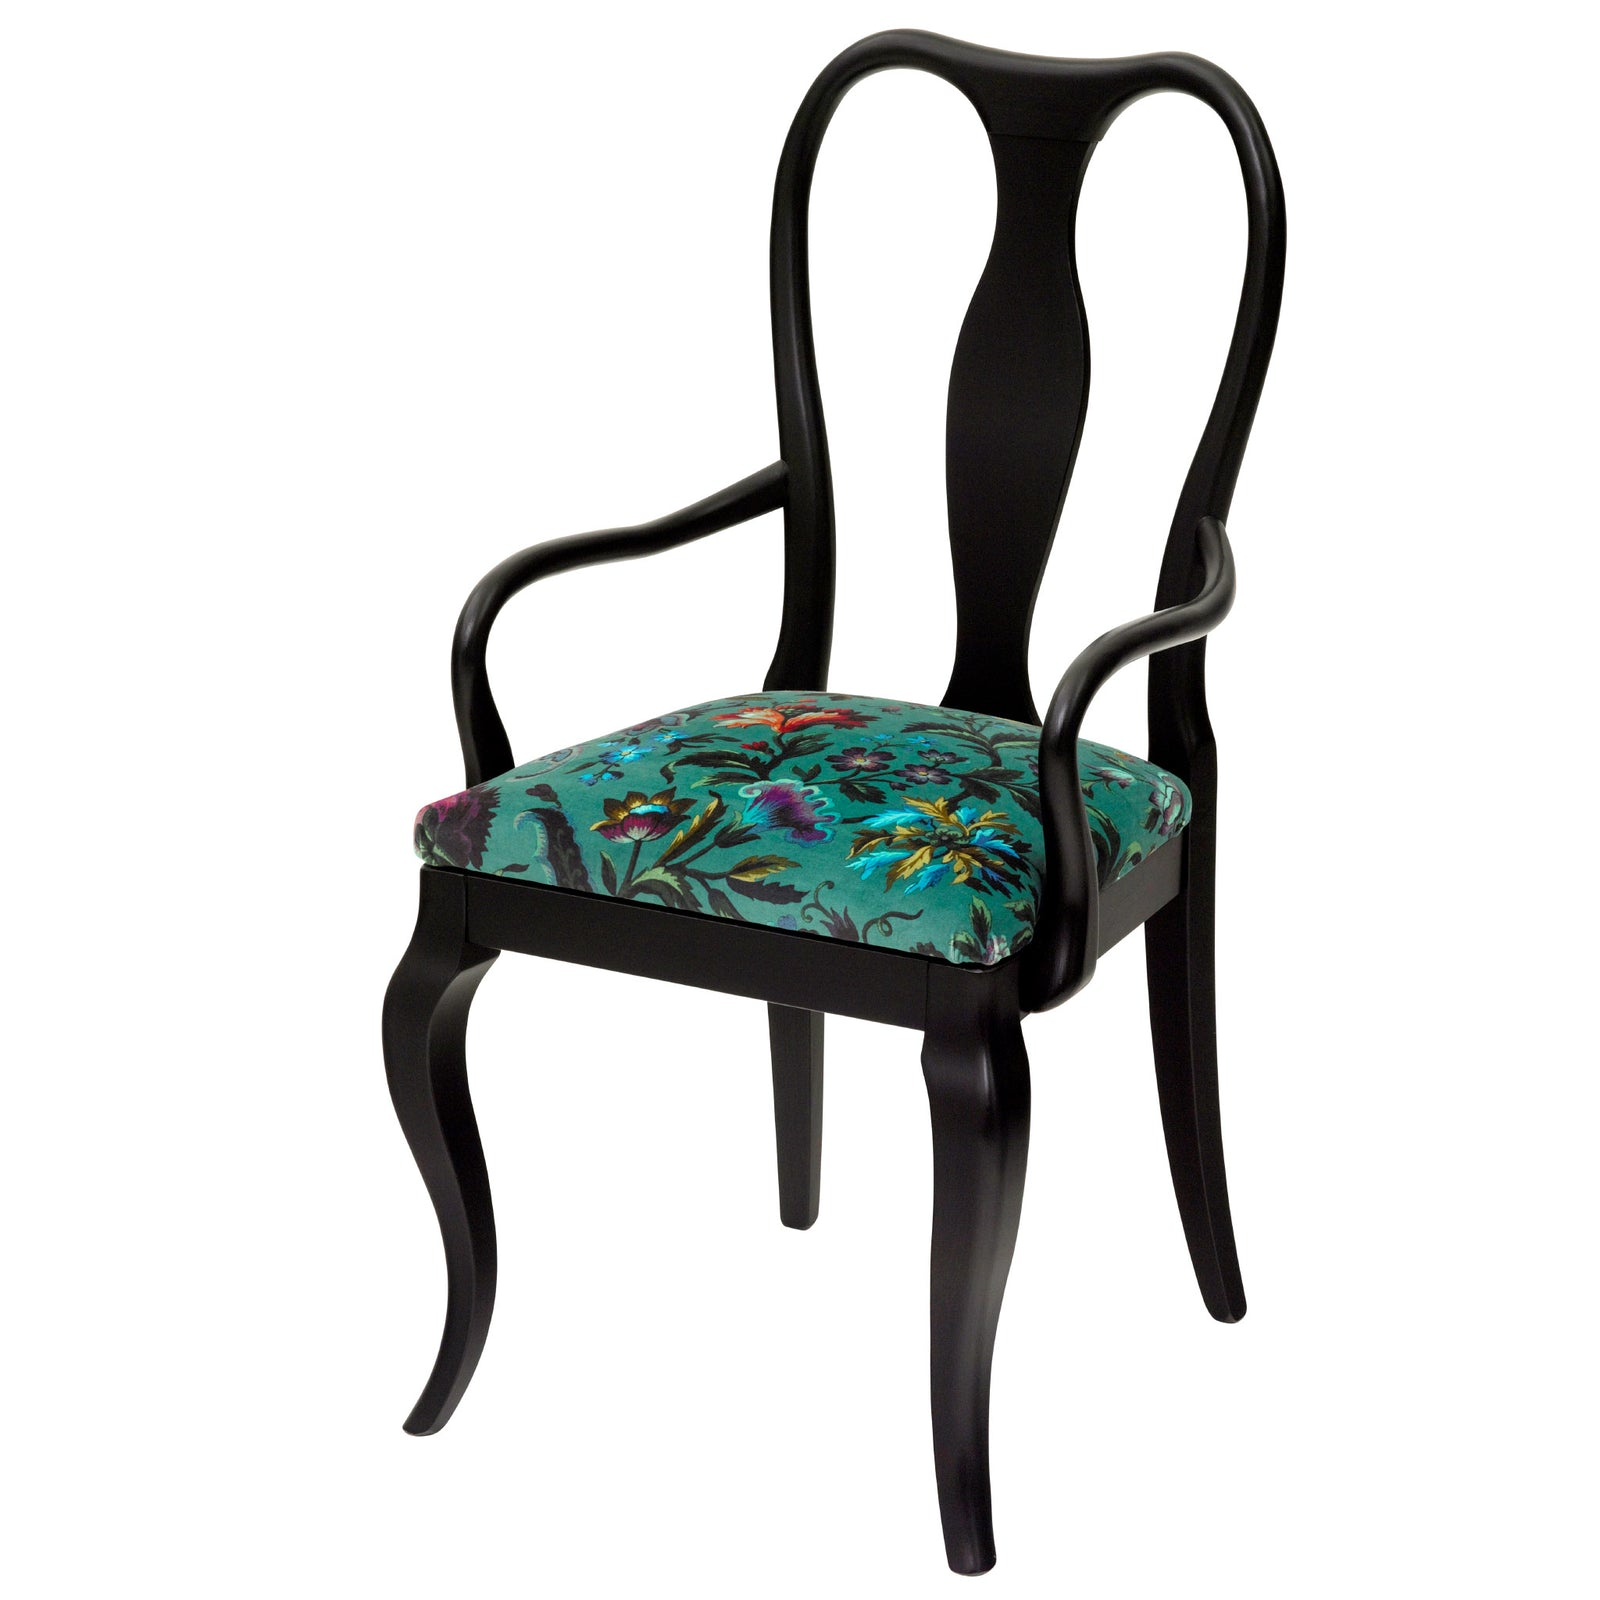 Black Contemporary Chair upholstered in Florika by House of Hackney